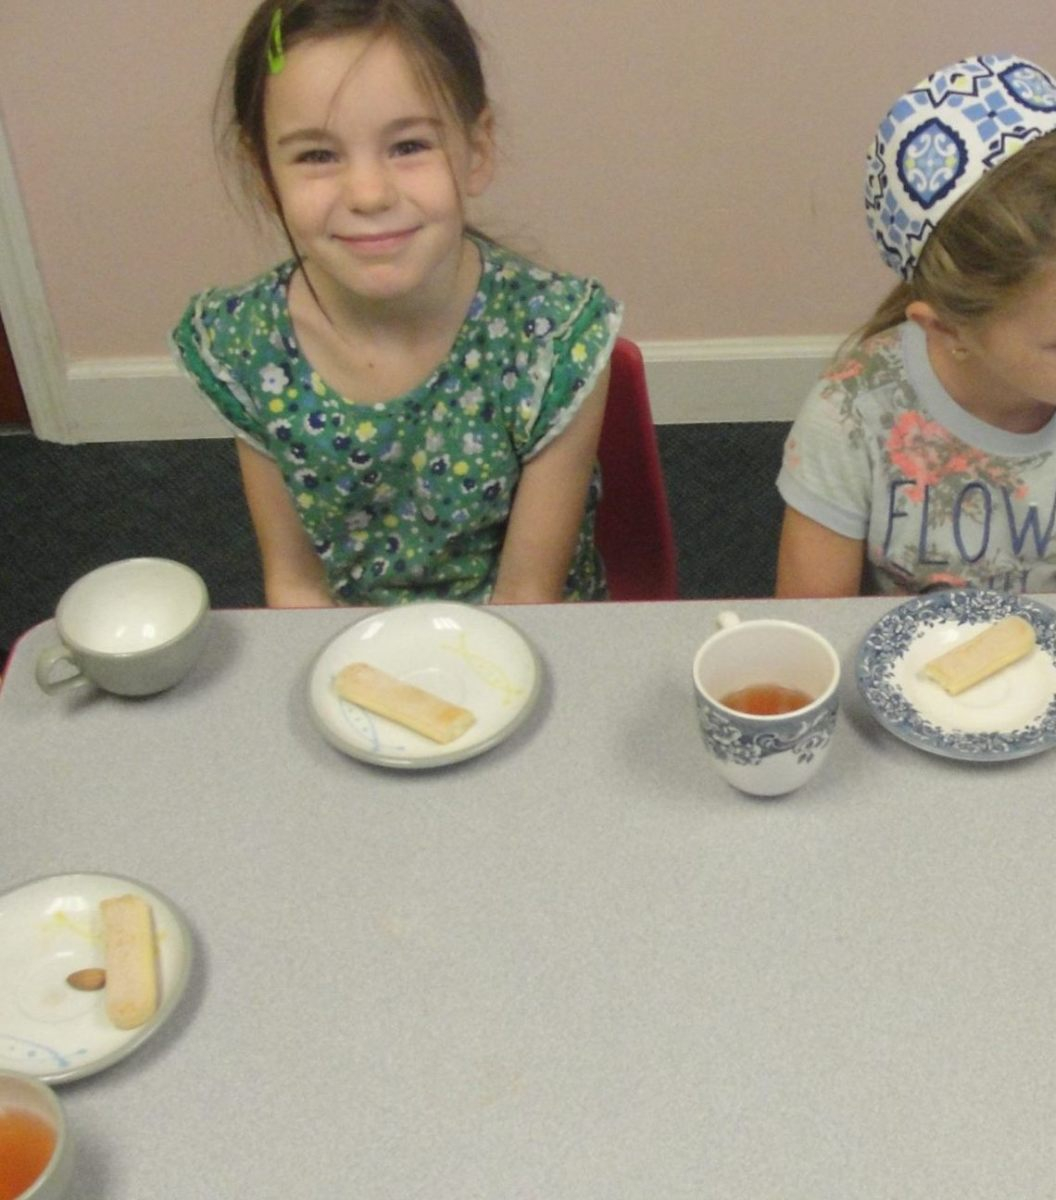 Enjoying a colonial tea party